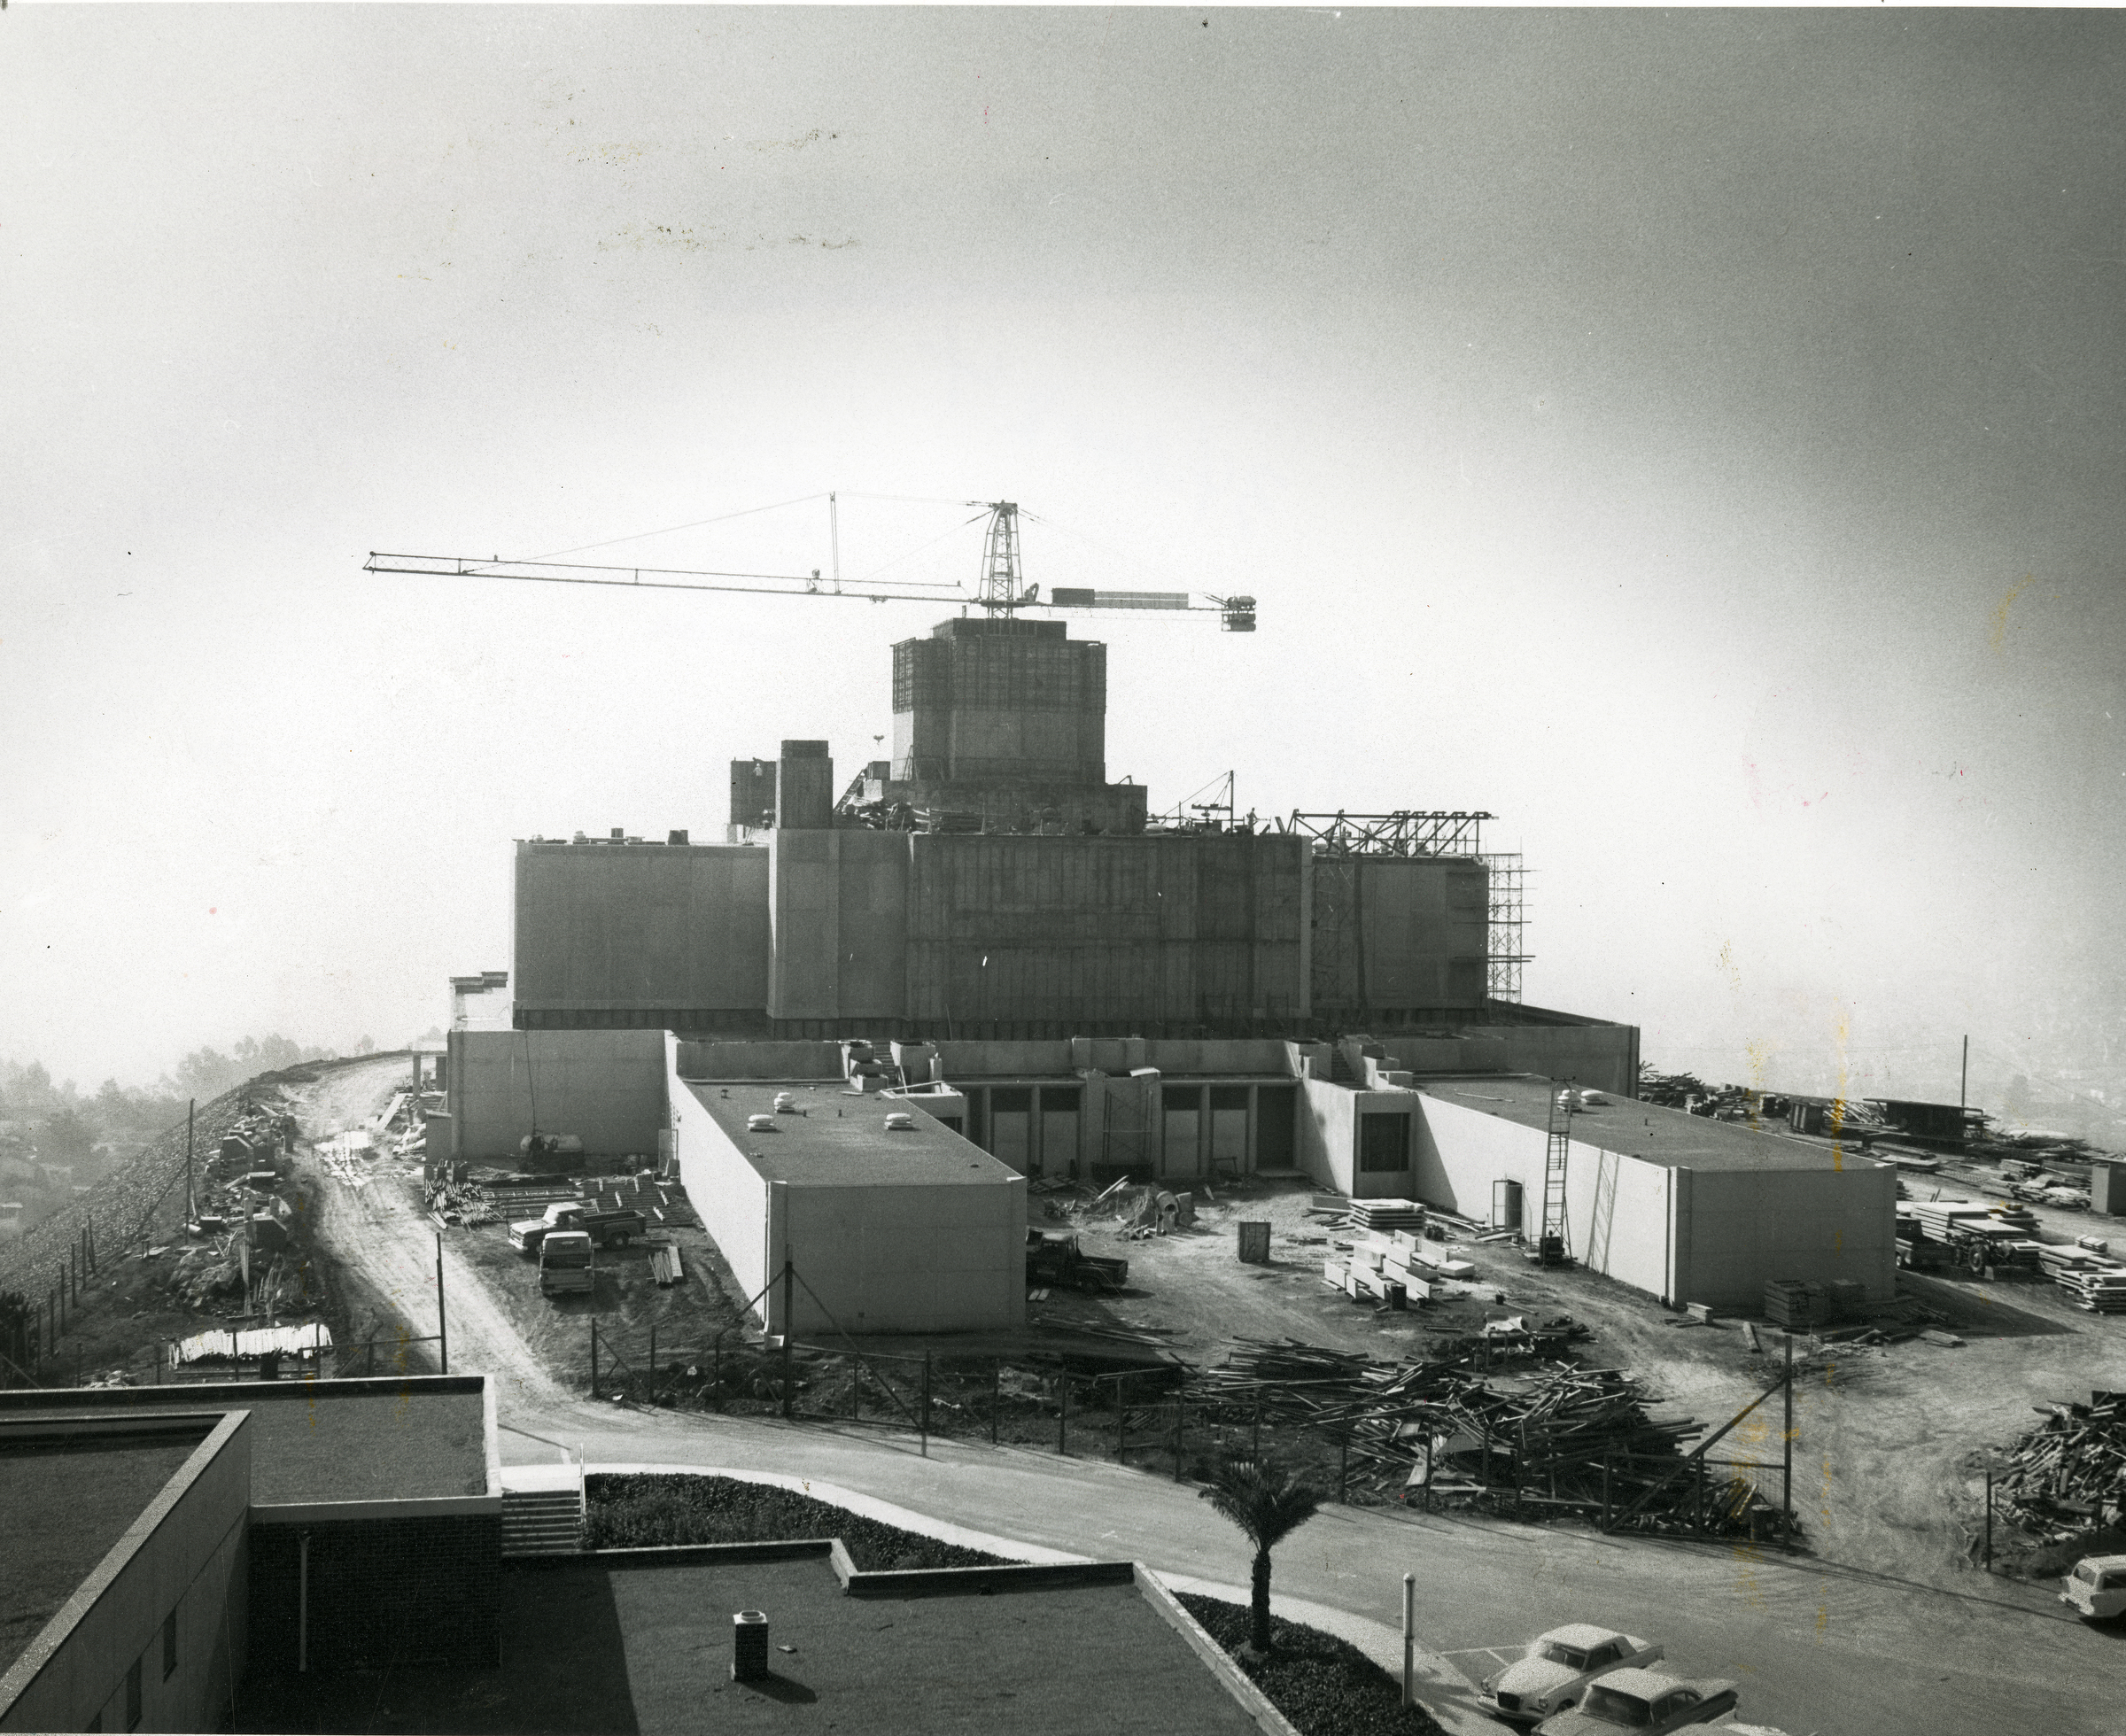 A historical photo of the construction of the Oakland California Temple, of The Church of Jesus Christ of Latter-day Saints, in Oakland, Calif.